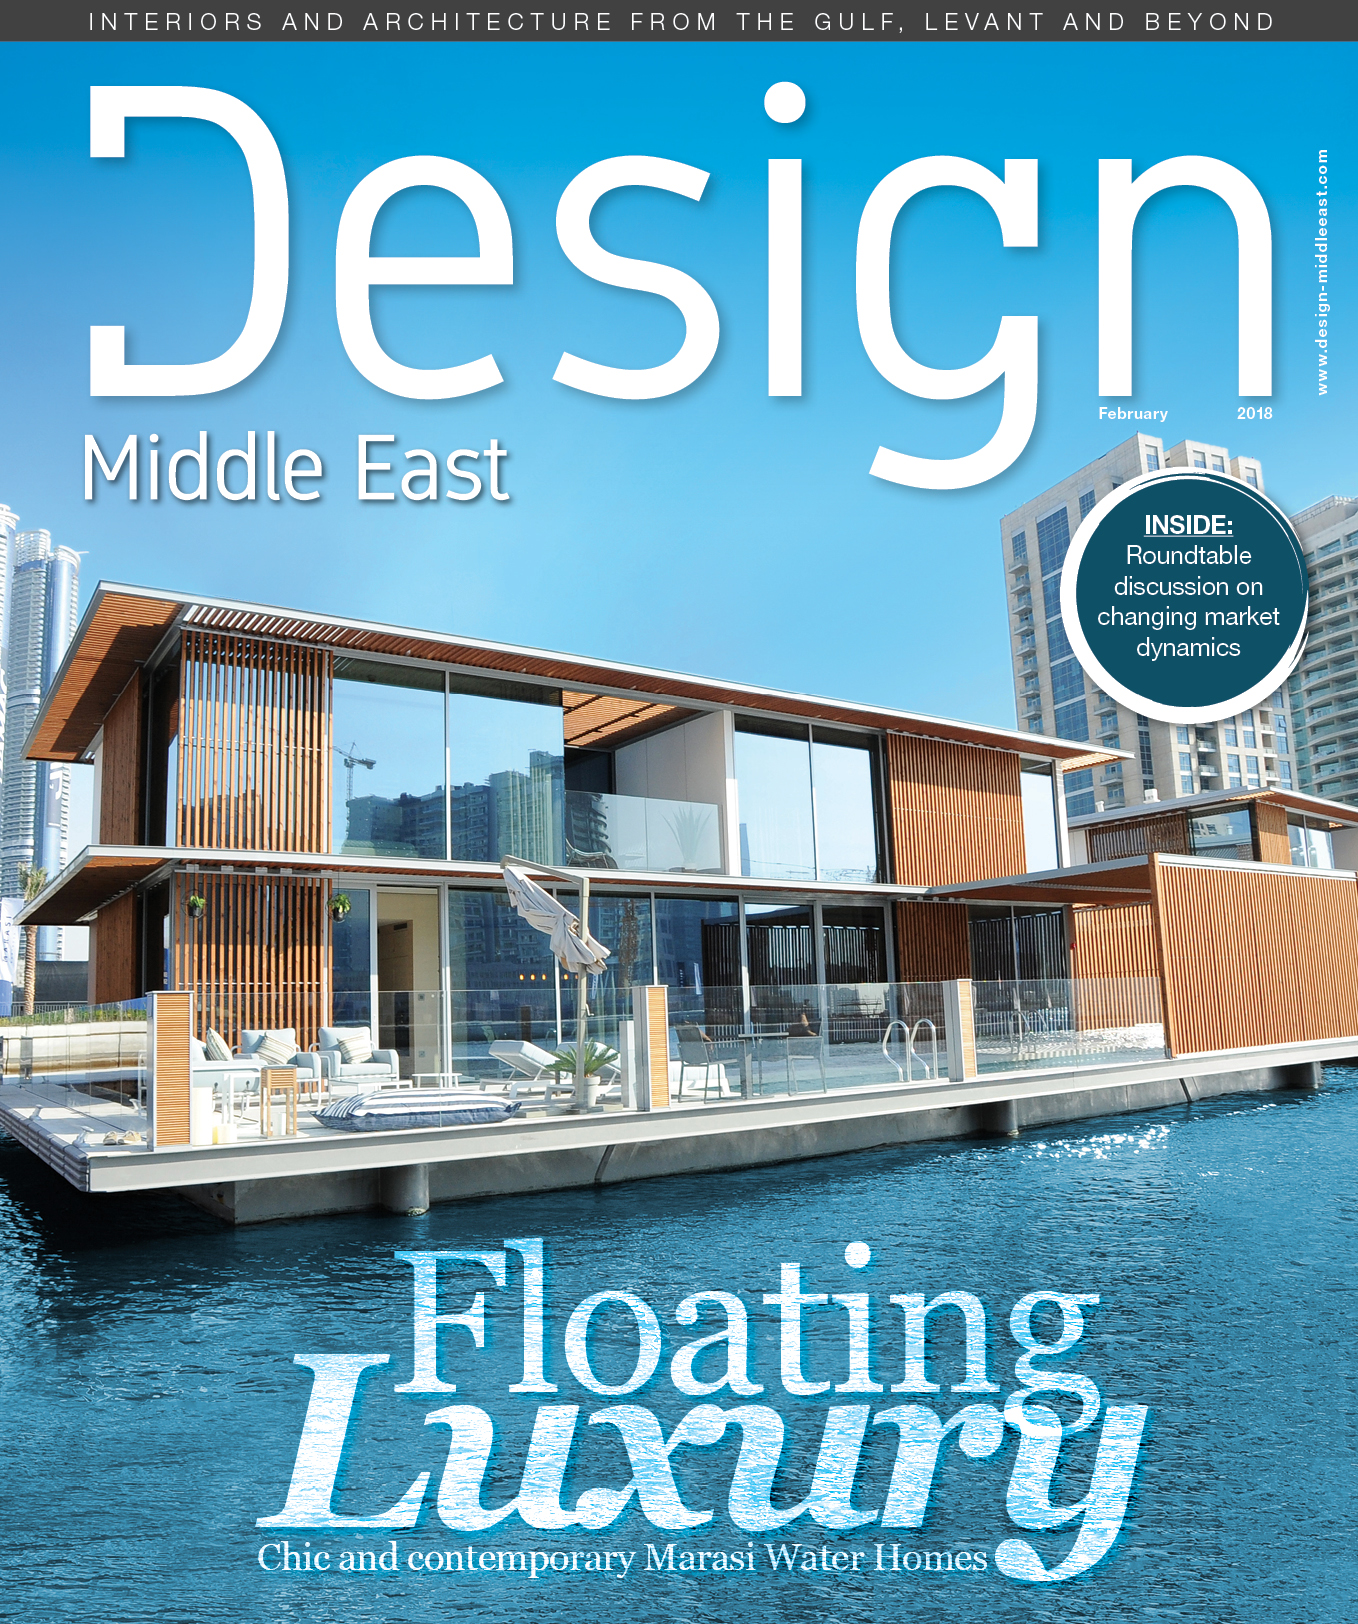 https://www.cbnme.com/magazines/design-middle-east-february-2018/